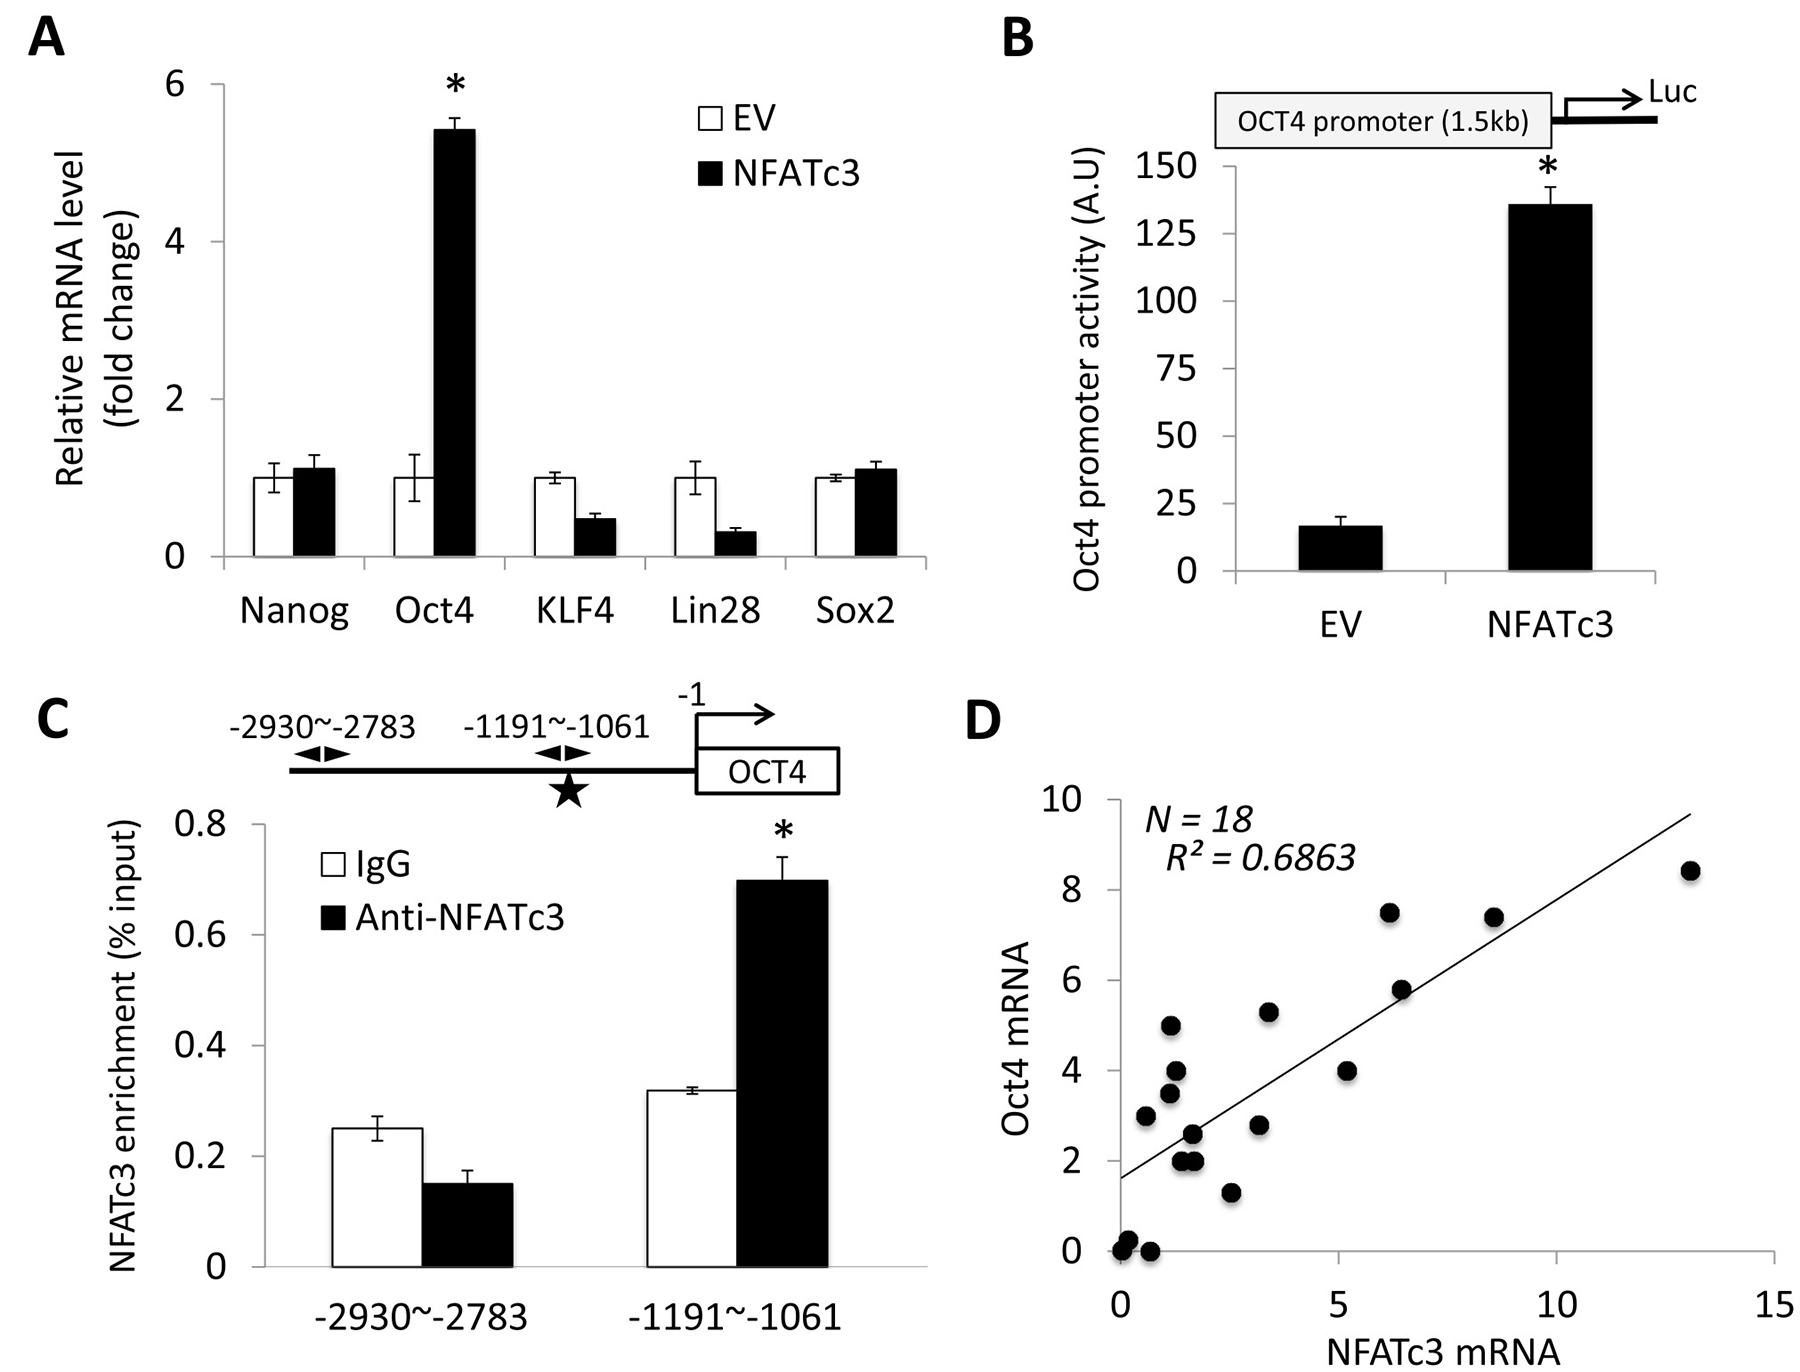 NFATc3 increases OCT4 expression by activating OCT4 promoter.